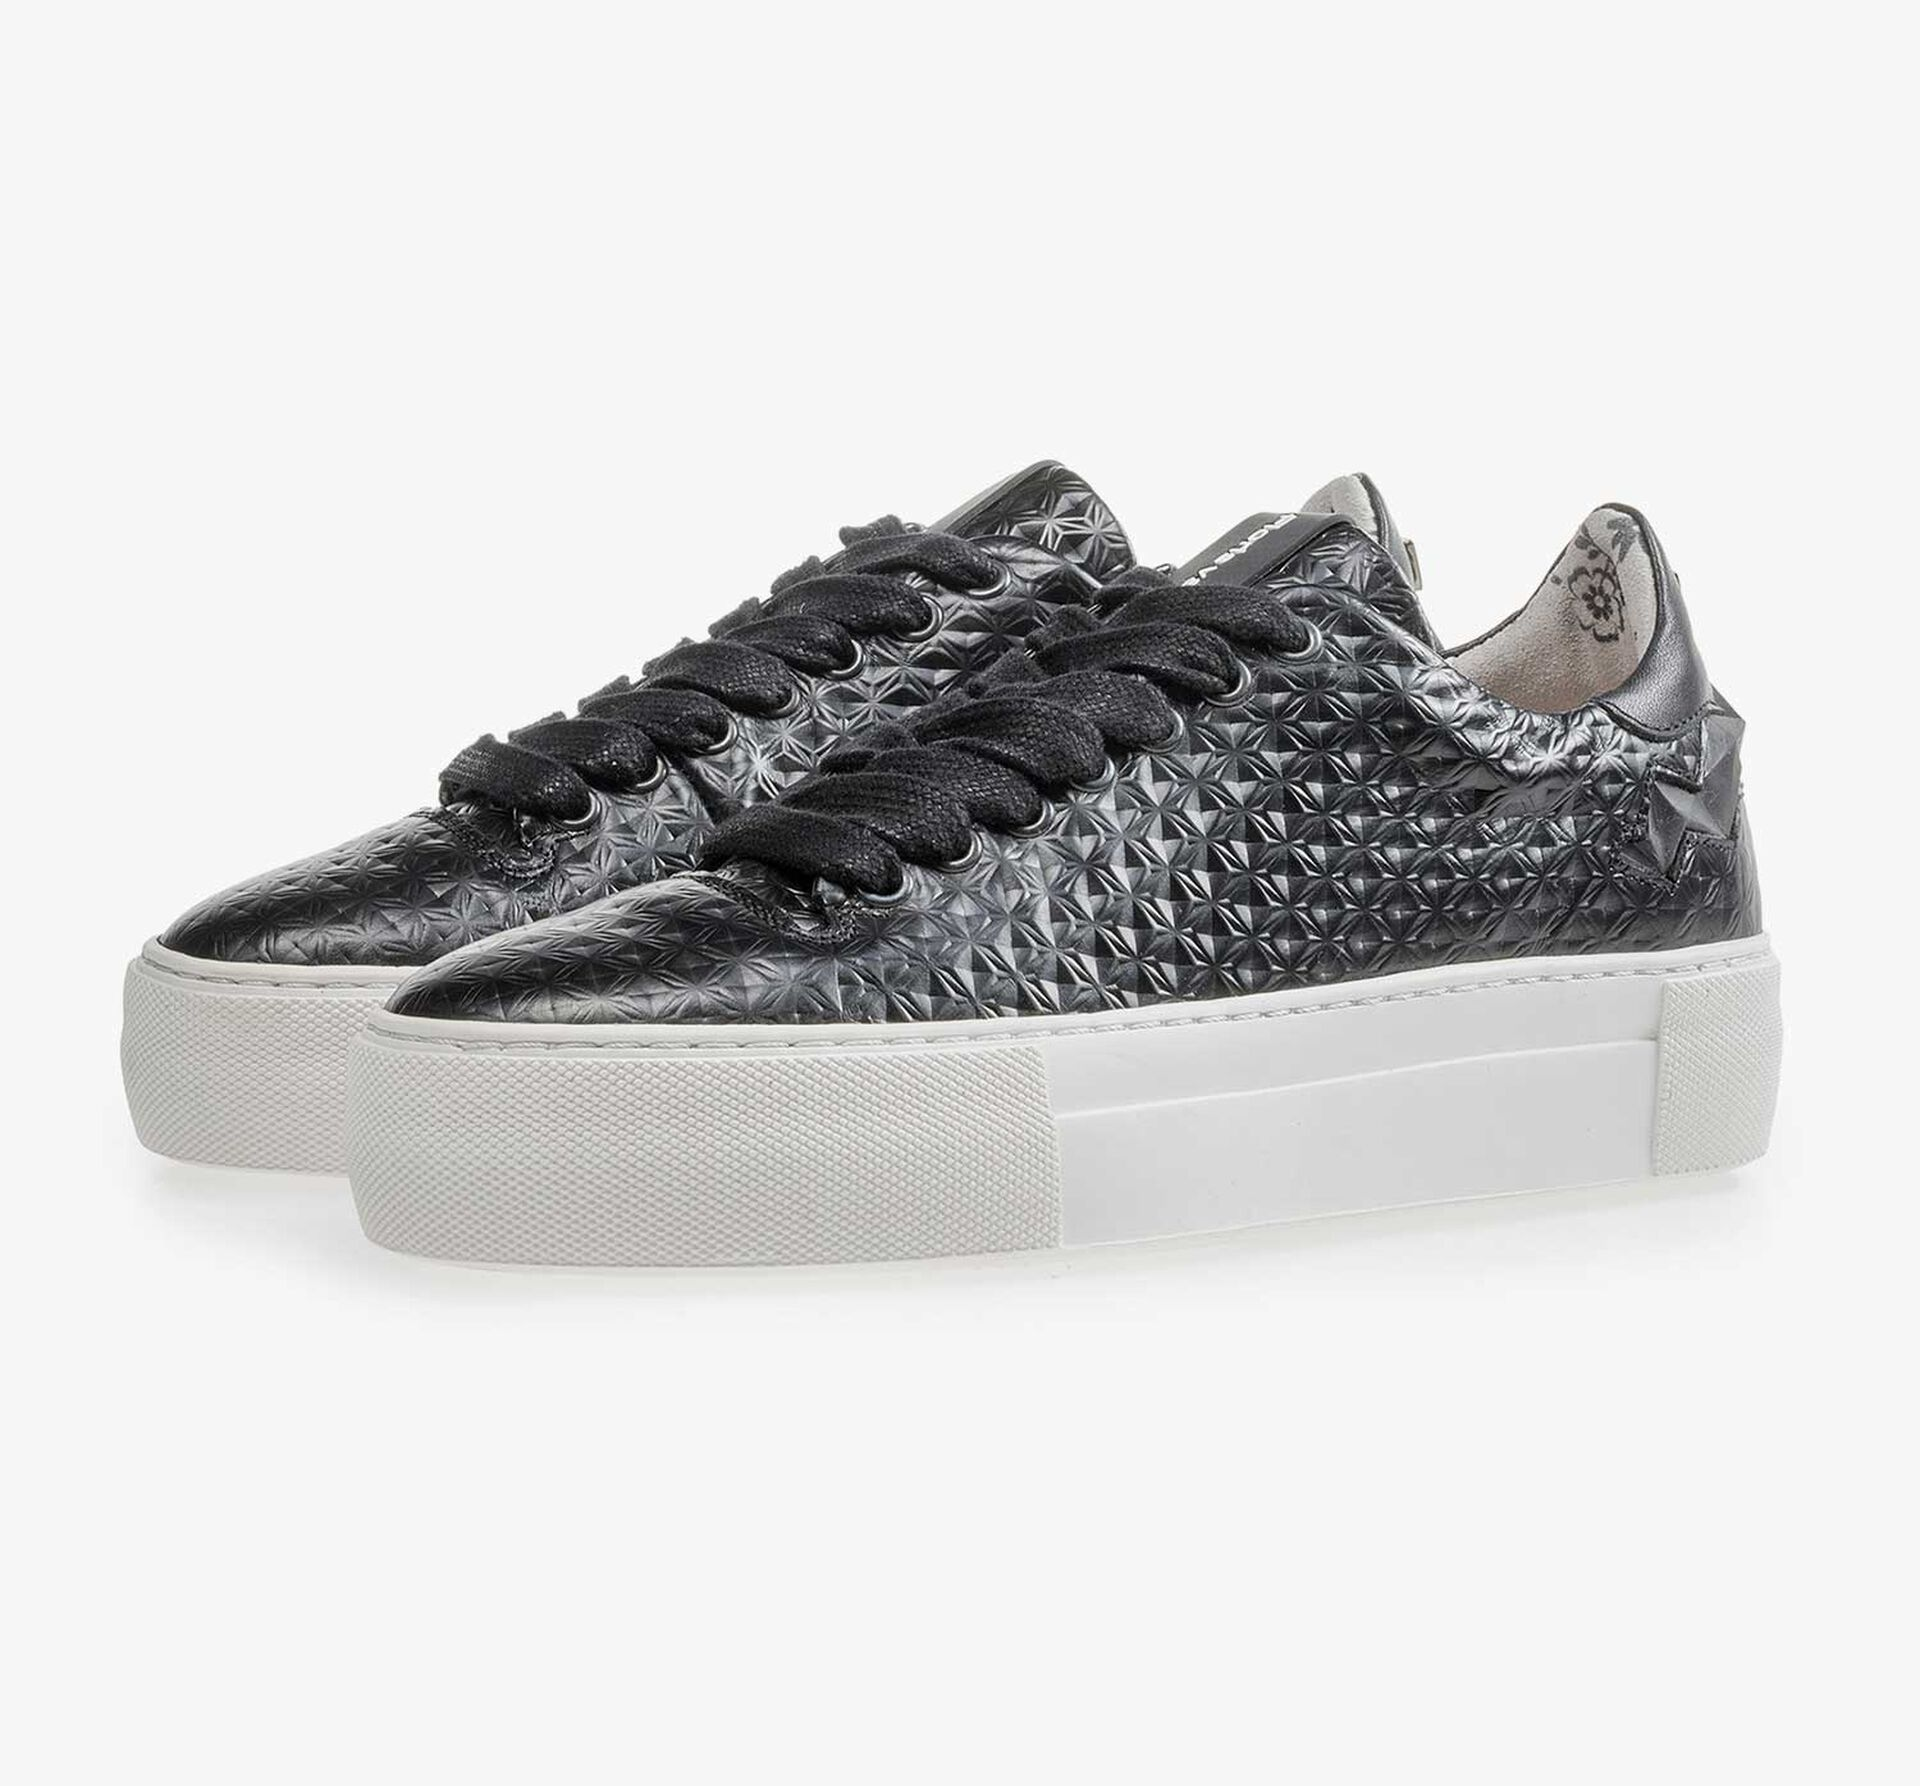 Black patterned leather sneaker